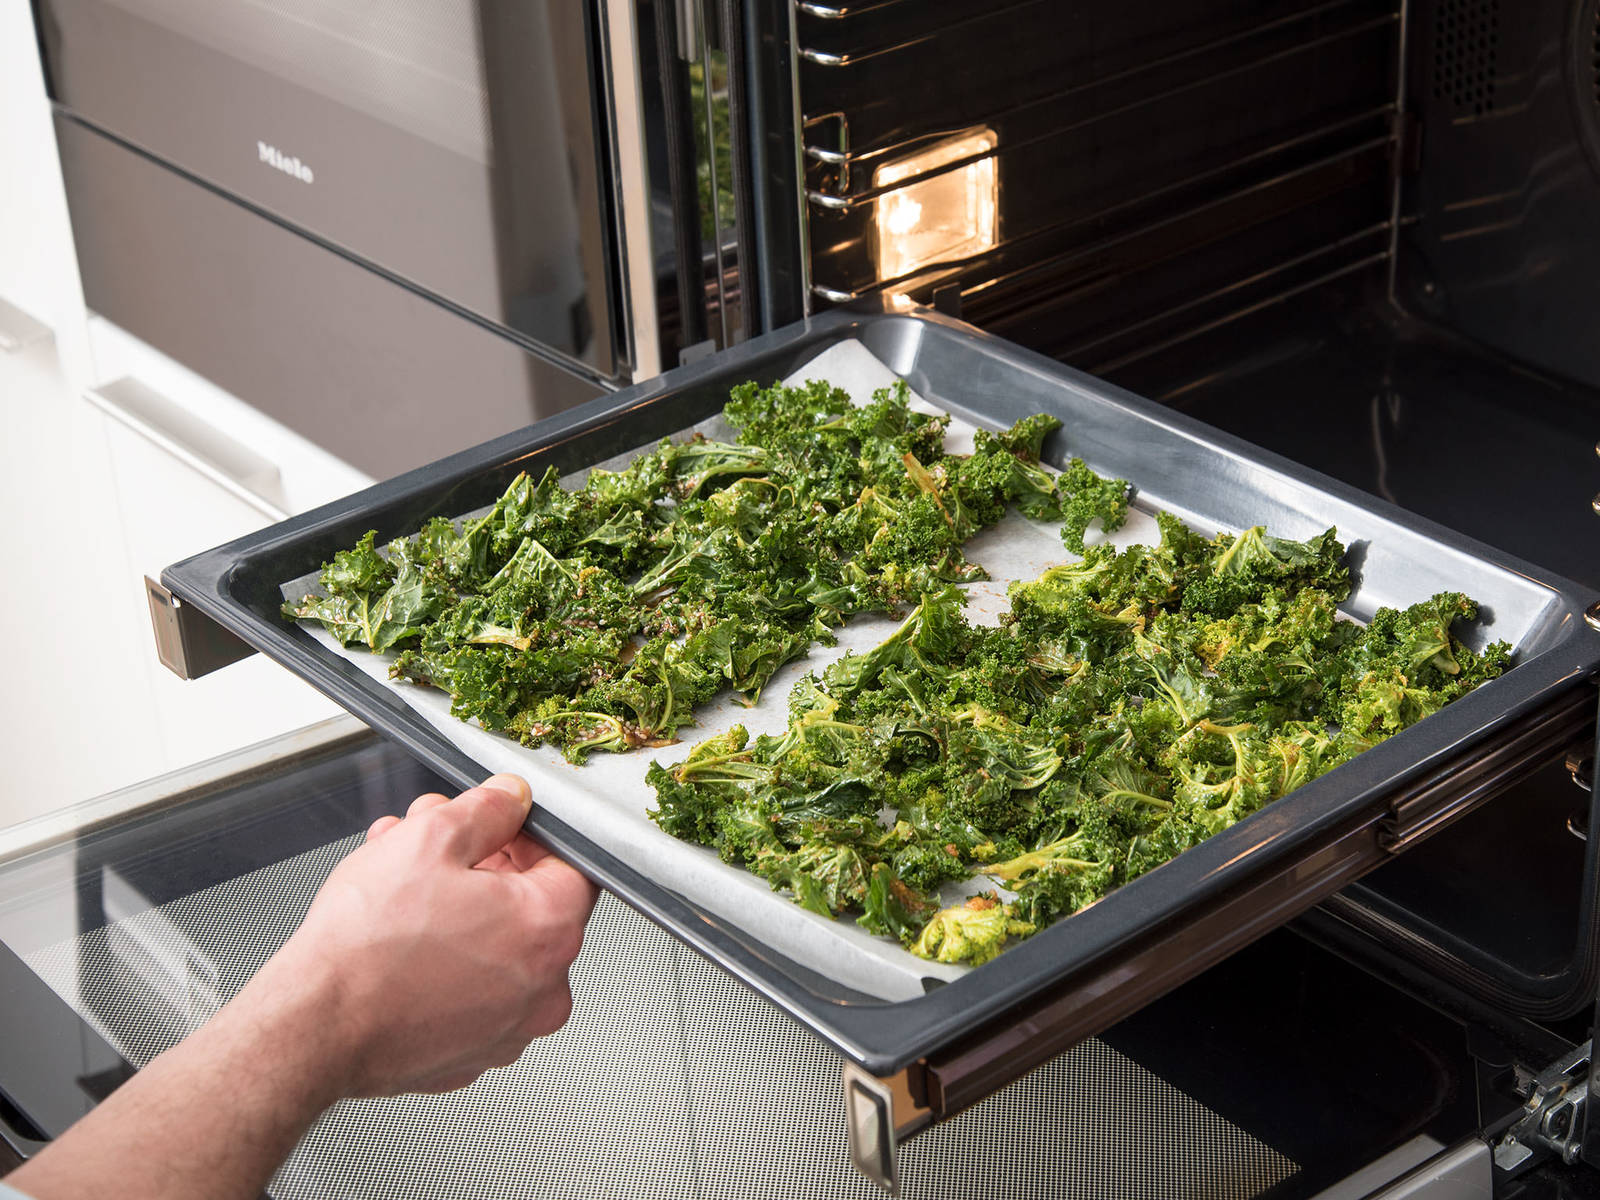 Spread the kale evenly on a parchment-lined baking sheet in one layer. Bake at 100°C/200°F for approx. 30 min. or until kale is crispy and slightly brown. Remove from oven and allow to cool completely. Enjoy!